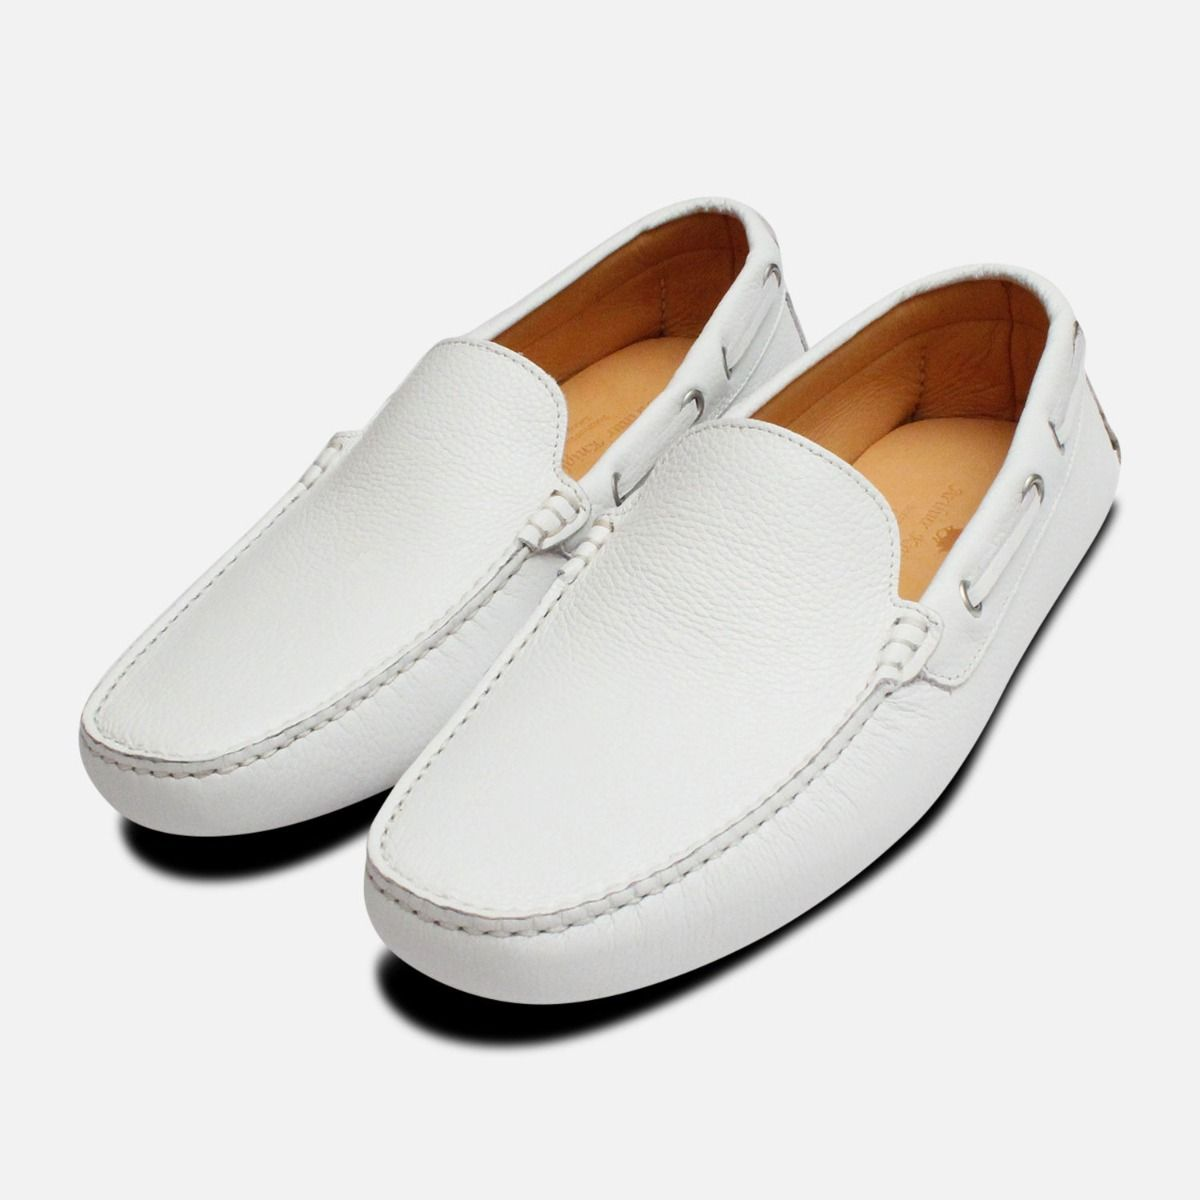 53a8b46b76ed White Leather Mens Driving Shoe Moccasins